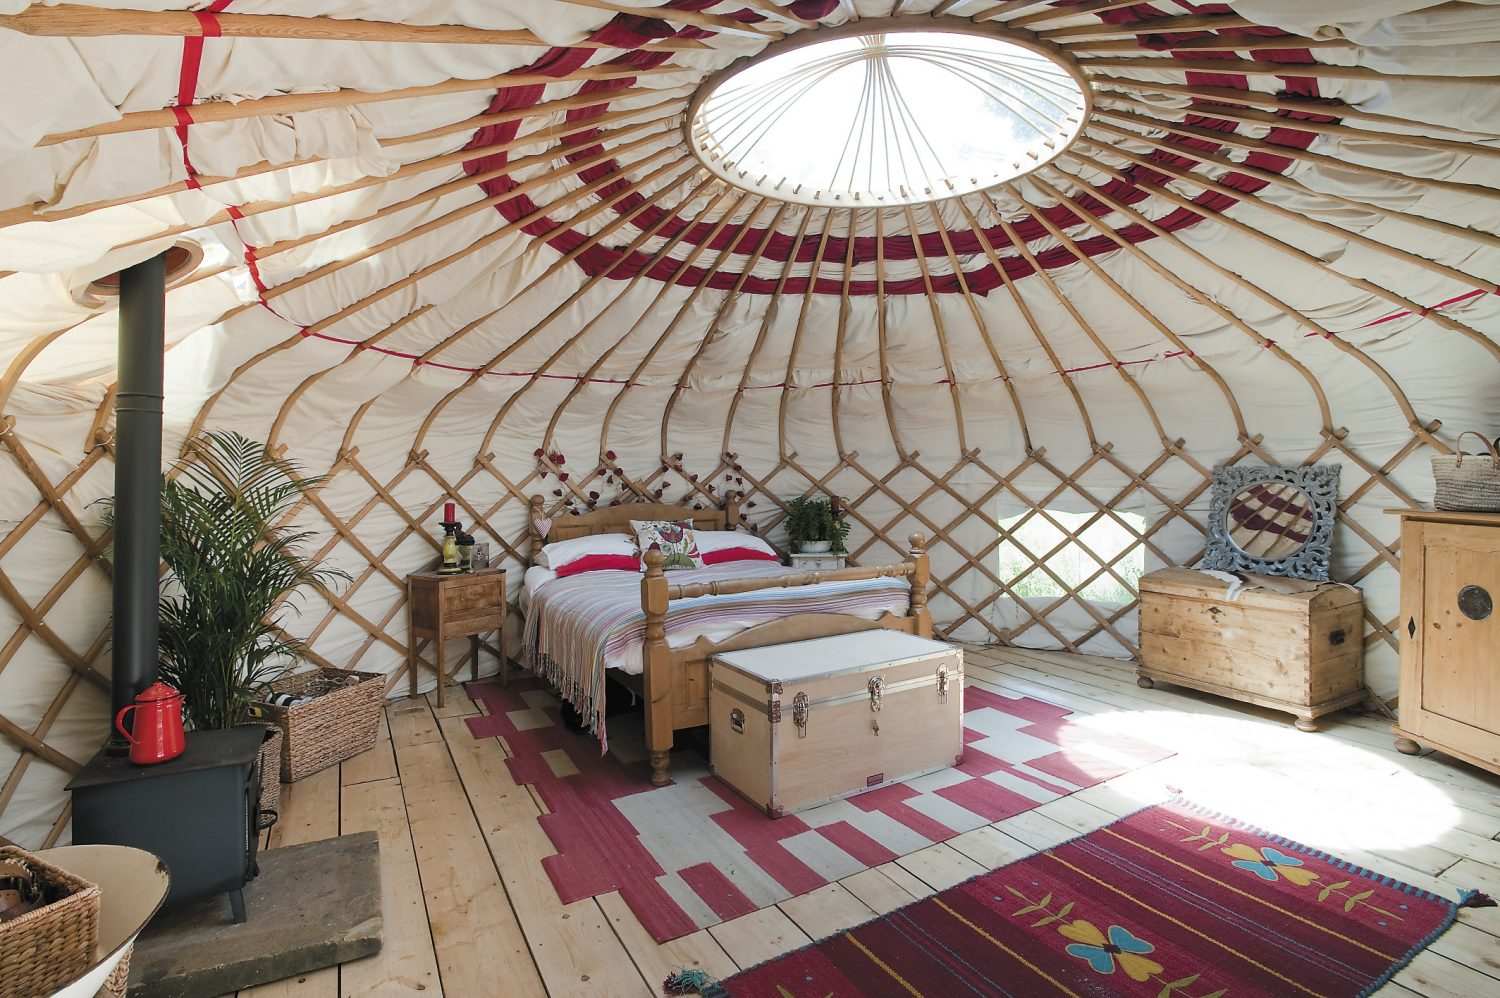 Mel and Lizzie's pièce de résistance is a beautiful yurt that serves as their own wonderful bedroom. A second entrance to Mel and Lizzie's yurt opens onto the garden